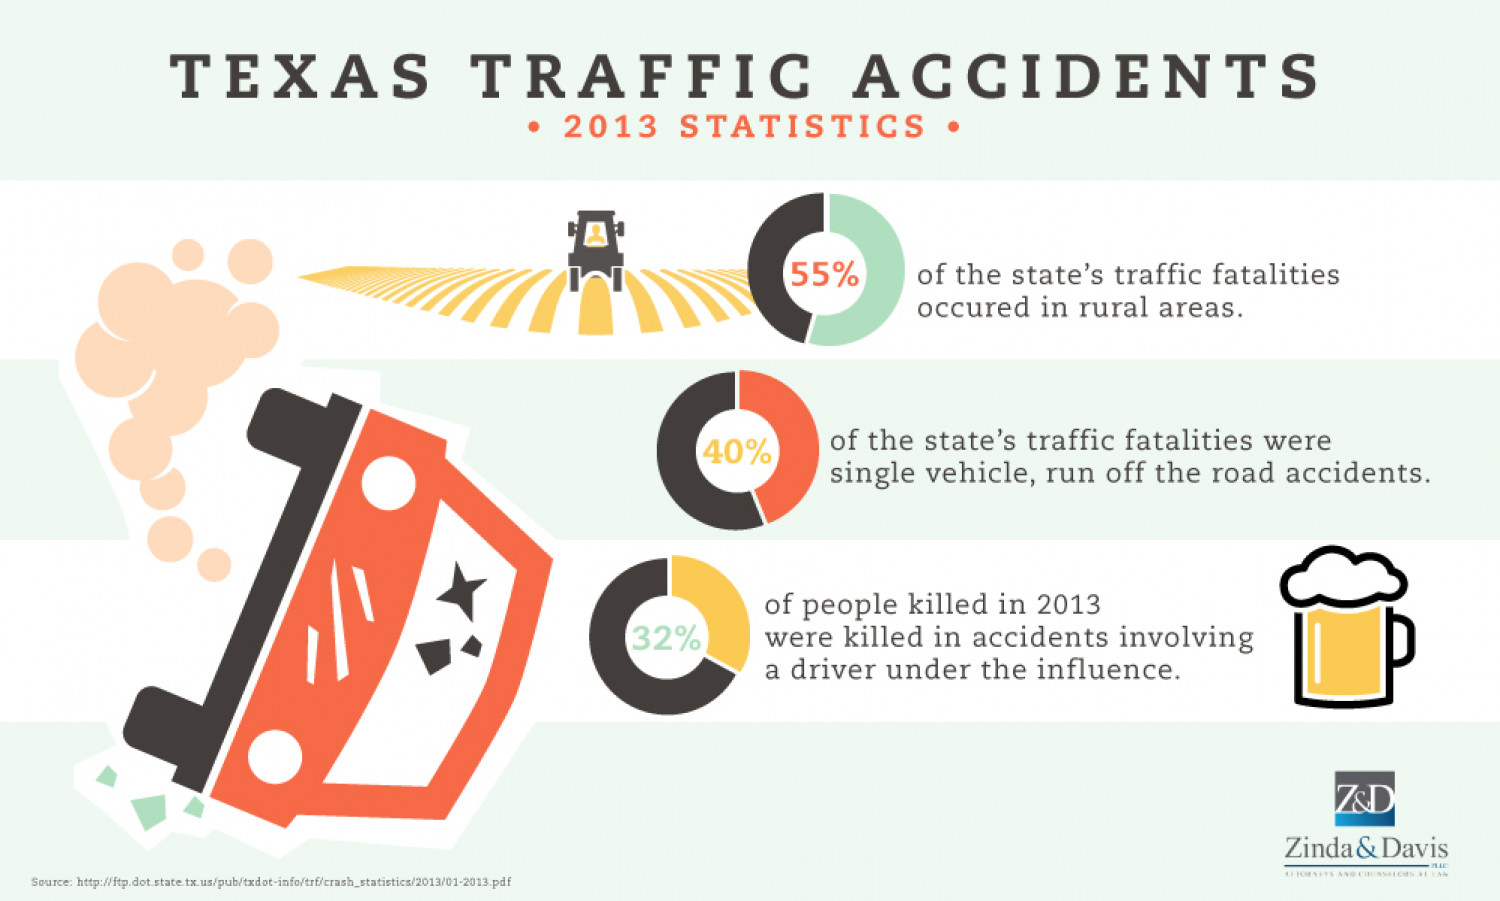 Texas Traffic Accidents: 2013 Statistics | Visual.ly